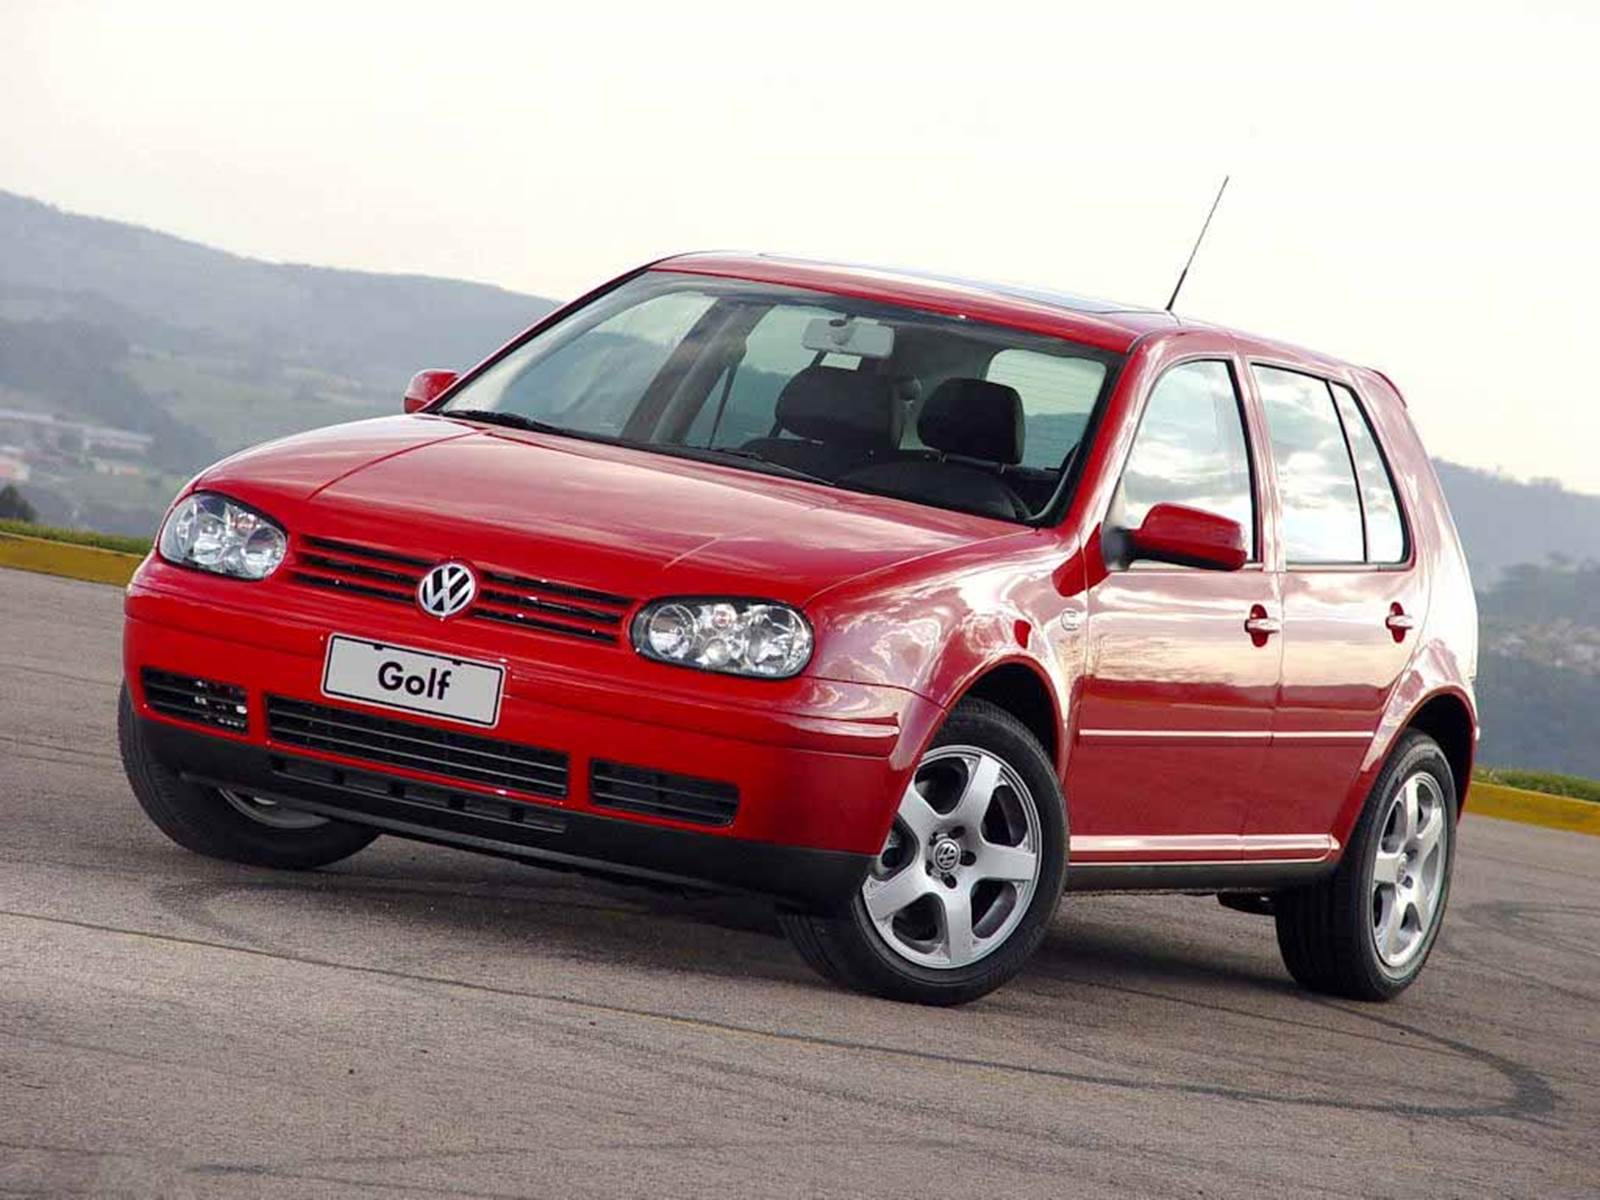 vw golf sport 2005 1 8 turbo fotos detalhes e especifica es car blog br. Black Bedroom Furniture Sets. Home Design Ideas